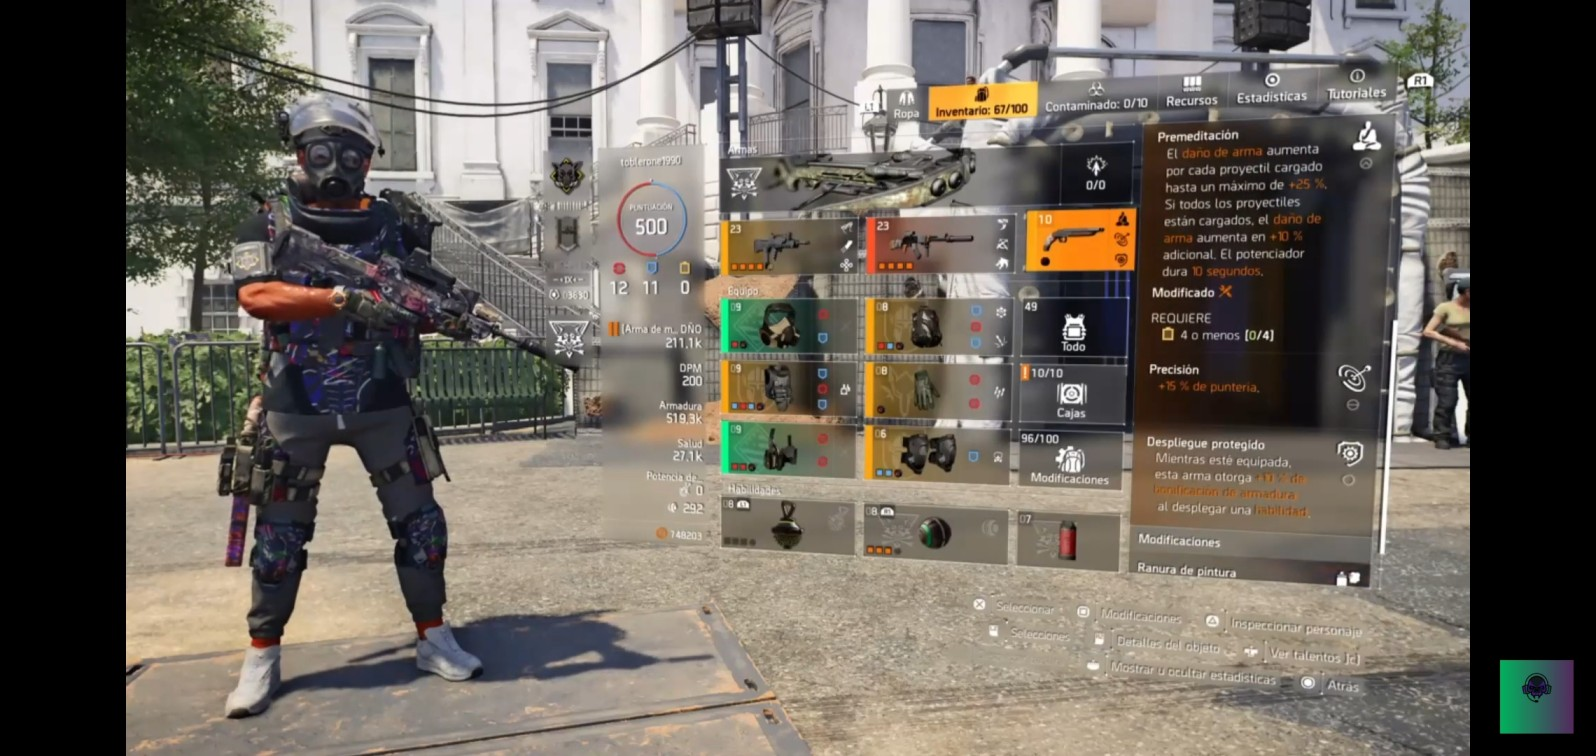 Top 5 Best Assault Rifle Builds For The Division 2 Gamers Decide